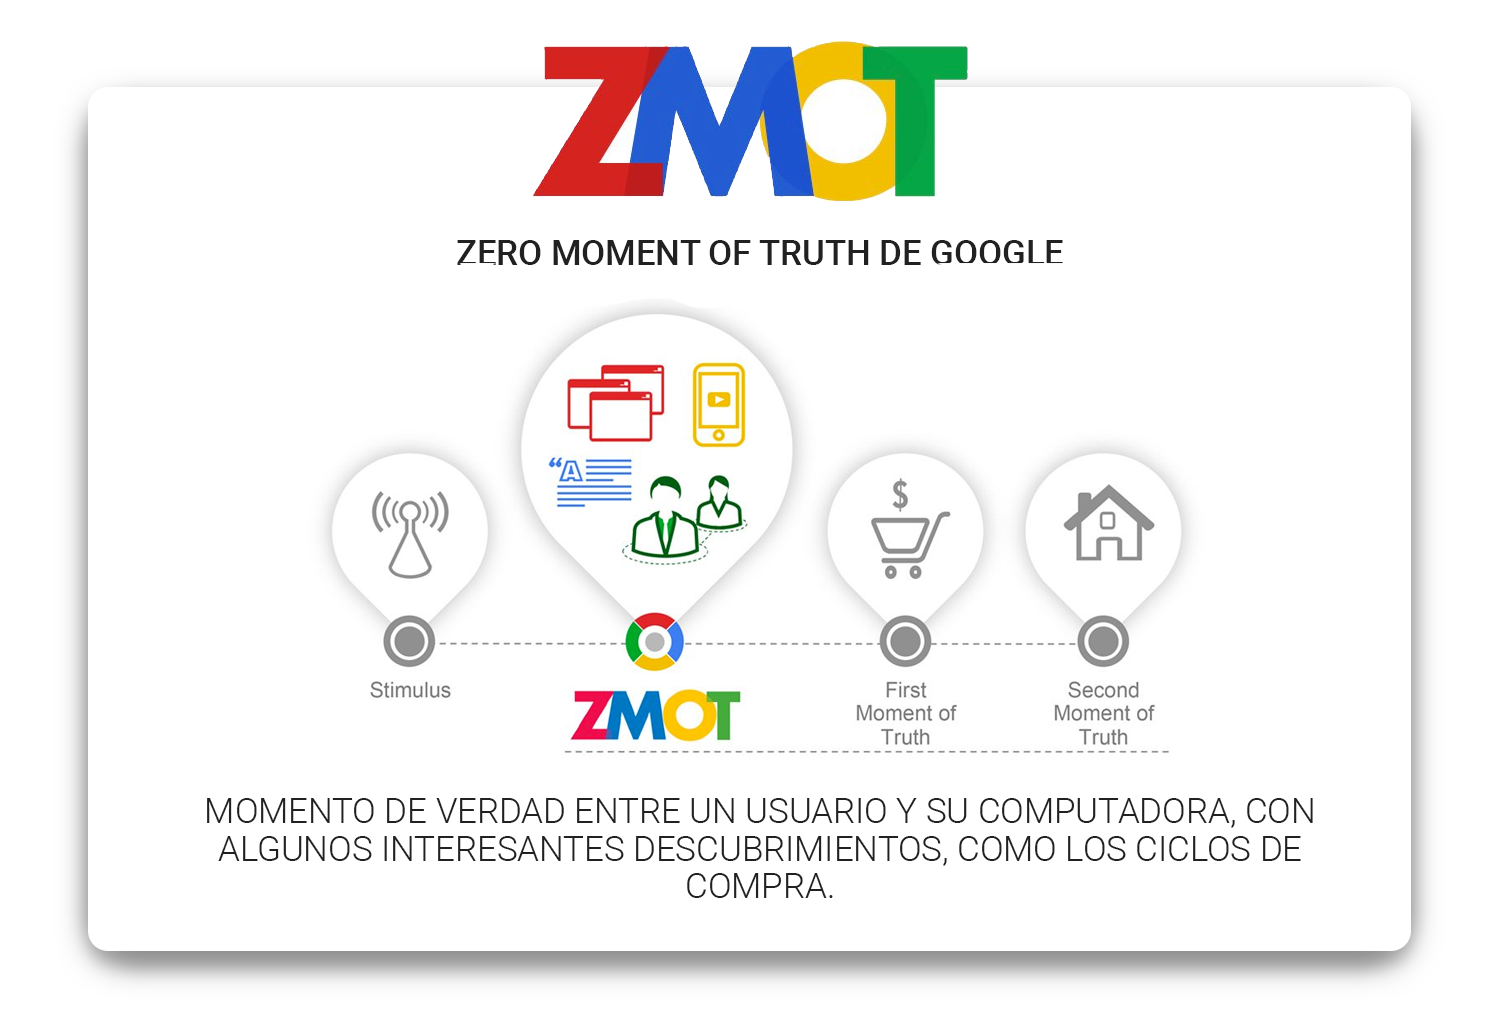 zmot-zero-moment-of-truth-google